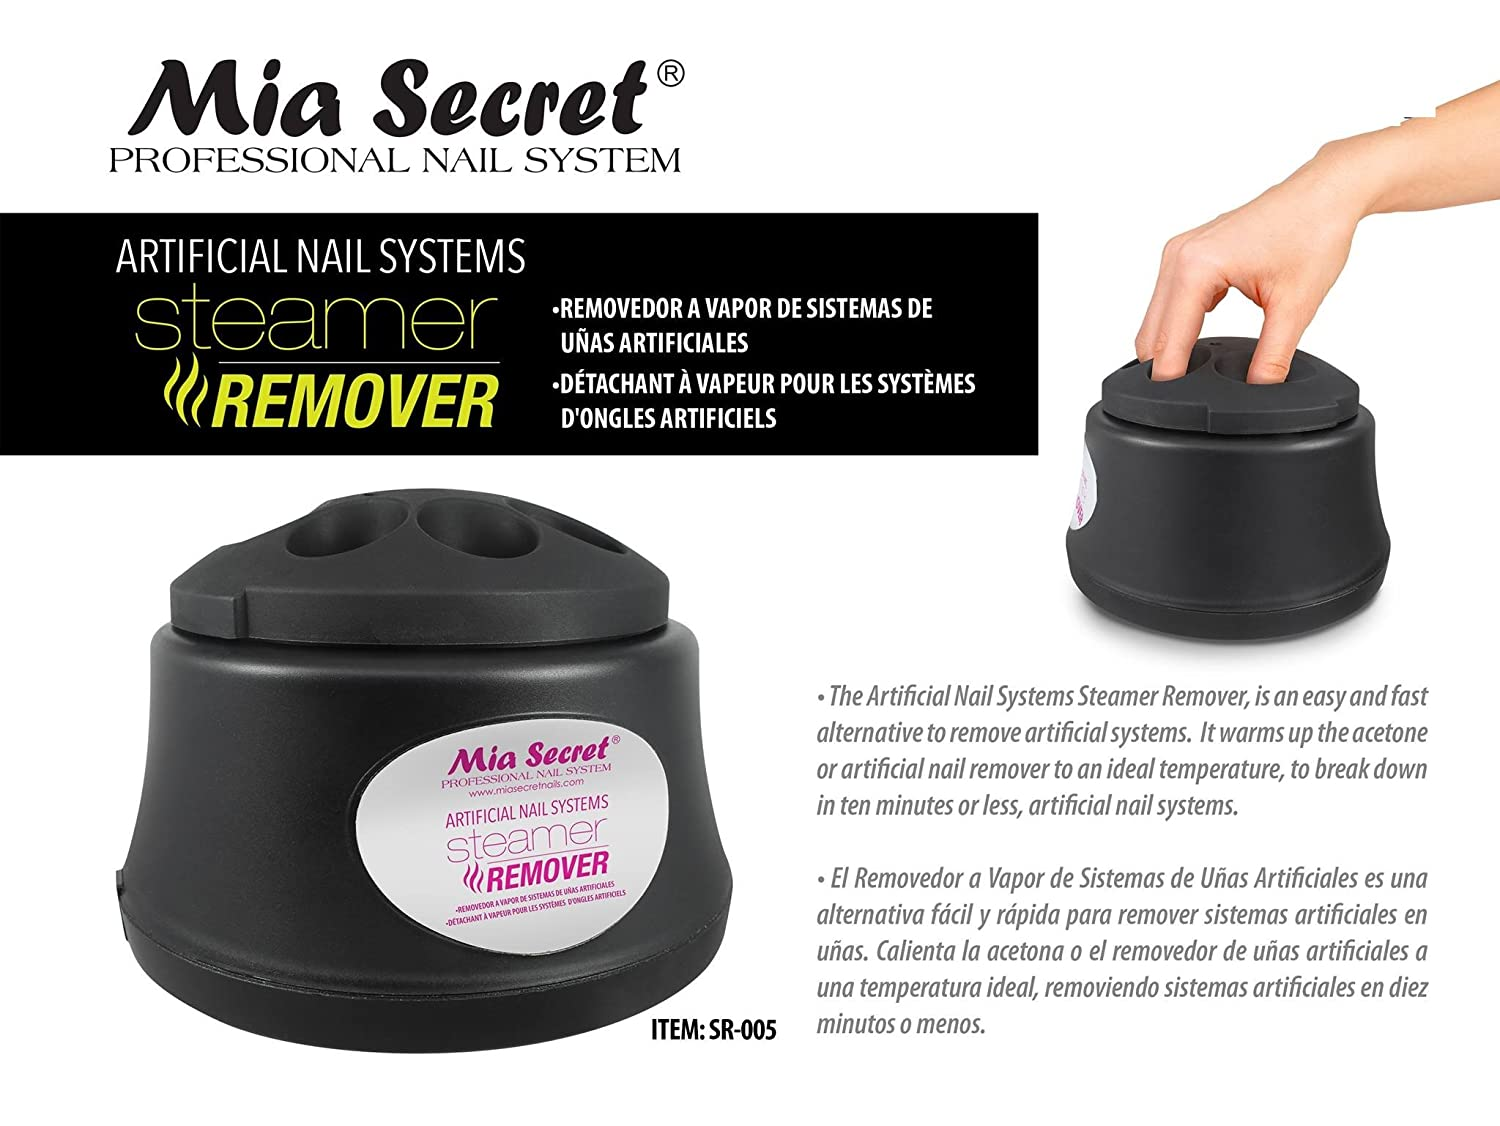 Mia Secret Professional Artificial Nail Remover Systems Acrylic or Gel Nail Steamer Remover